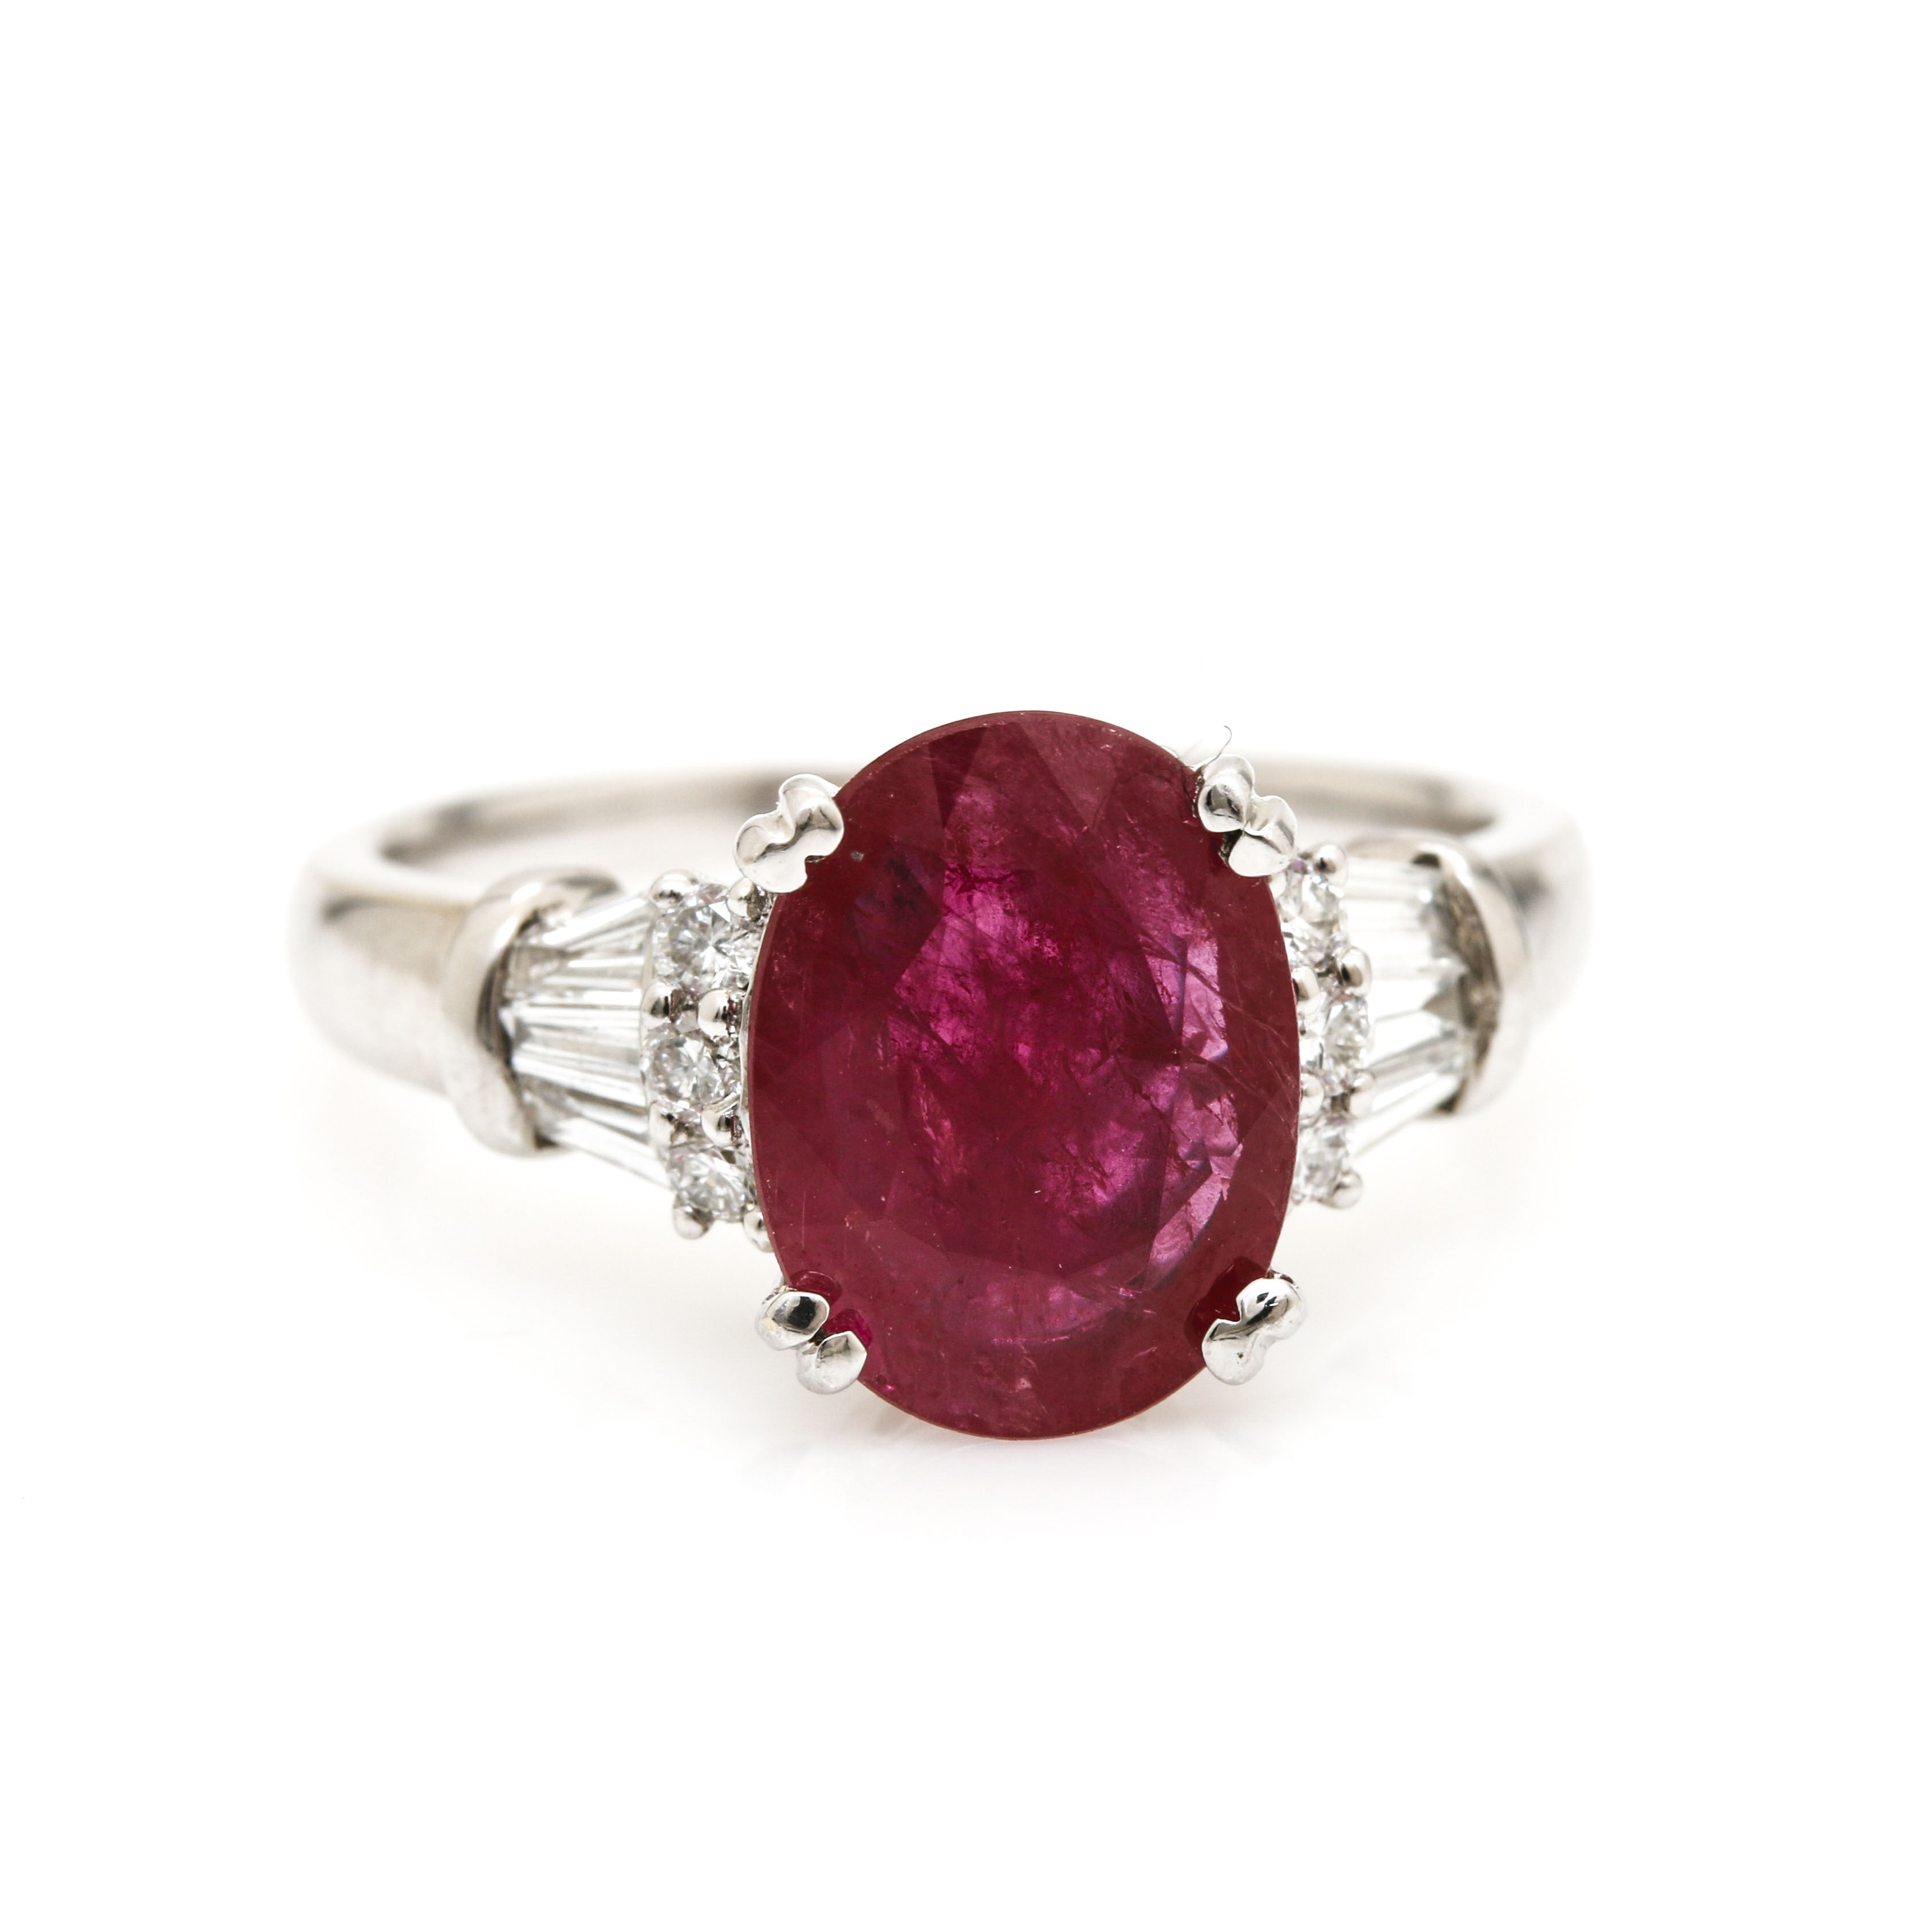 14K White Gold 1.85 CT Ruby and Diamond Ring